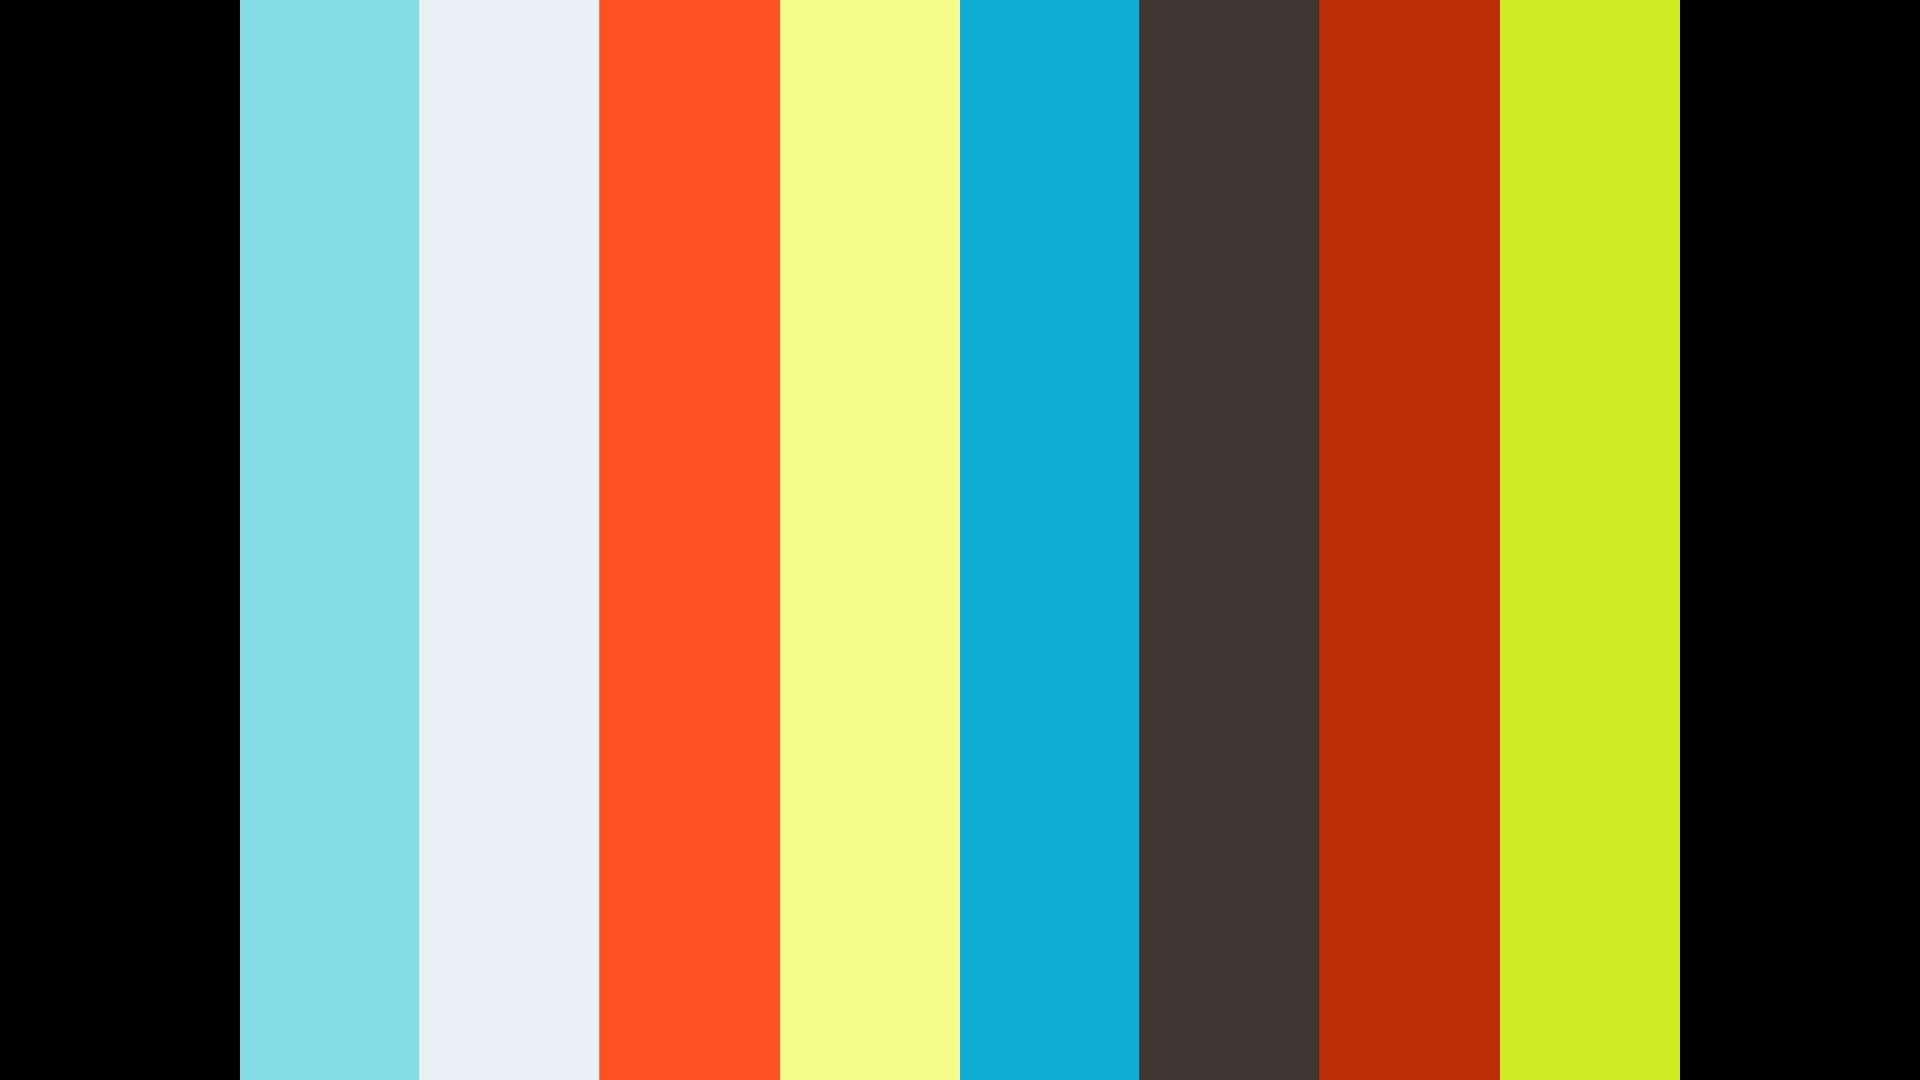 Interview Jörg Hausendorf (Bauer Media Group/BAUER PREMIUM)